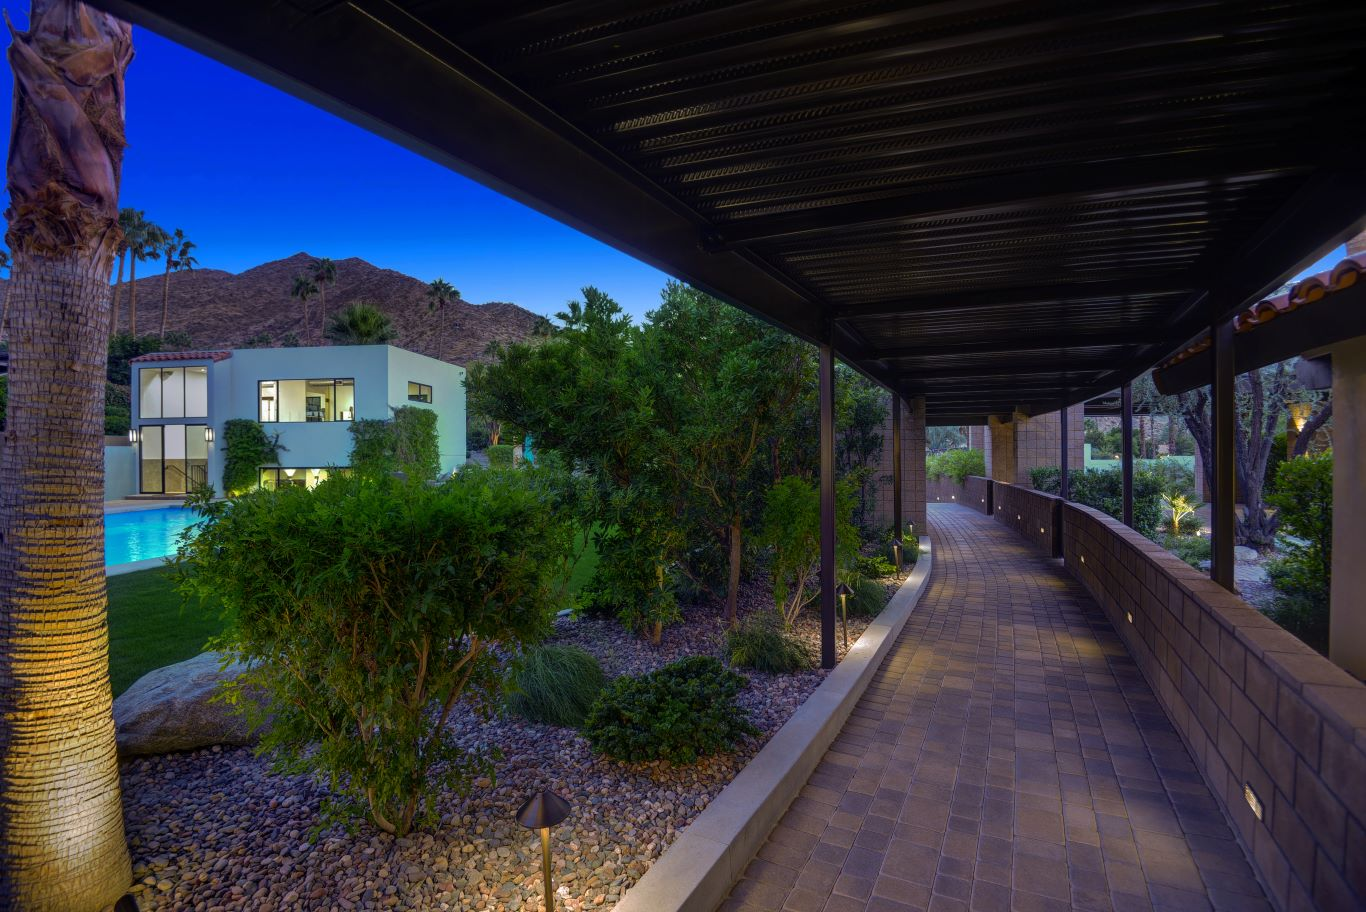 Walkway to Front of Home - Night View